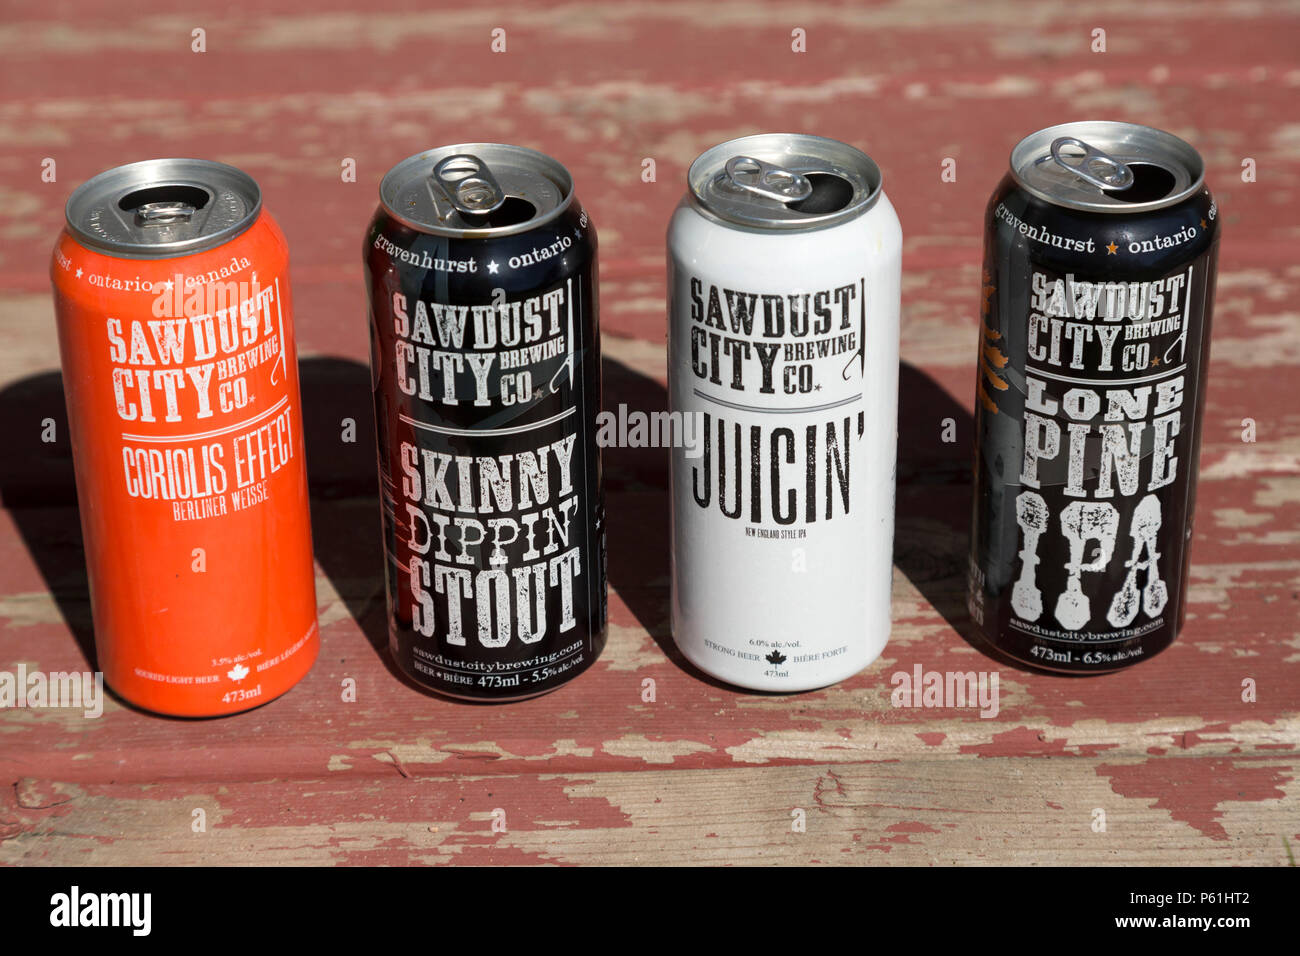 Empty cans of beer brewed by the Sawdust City Brewing Co  in